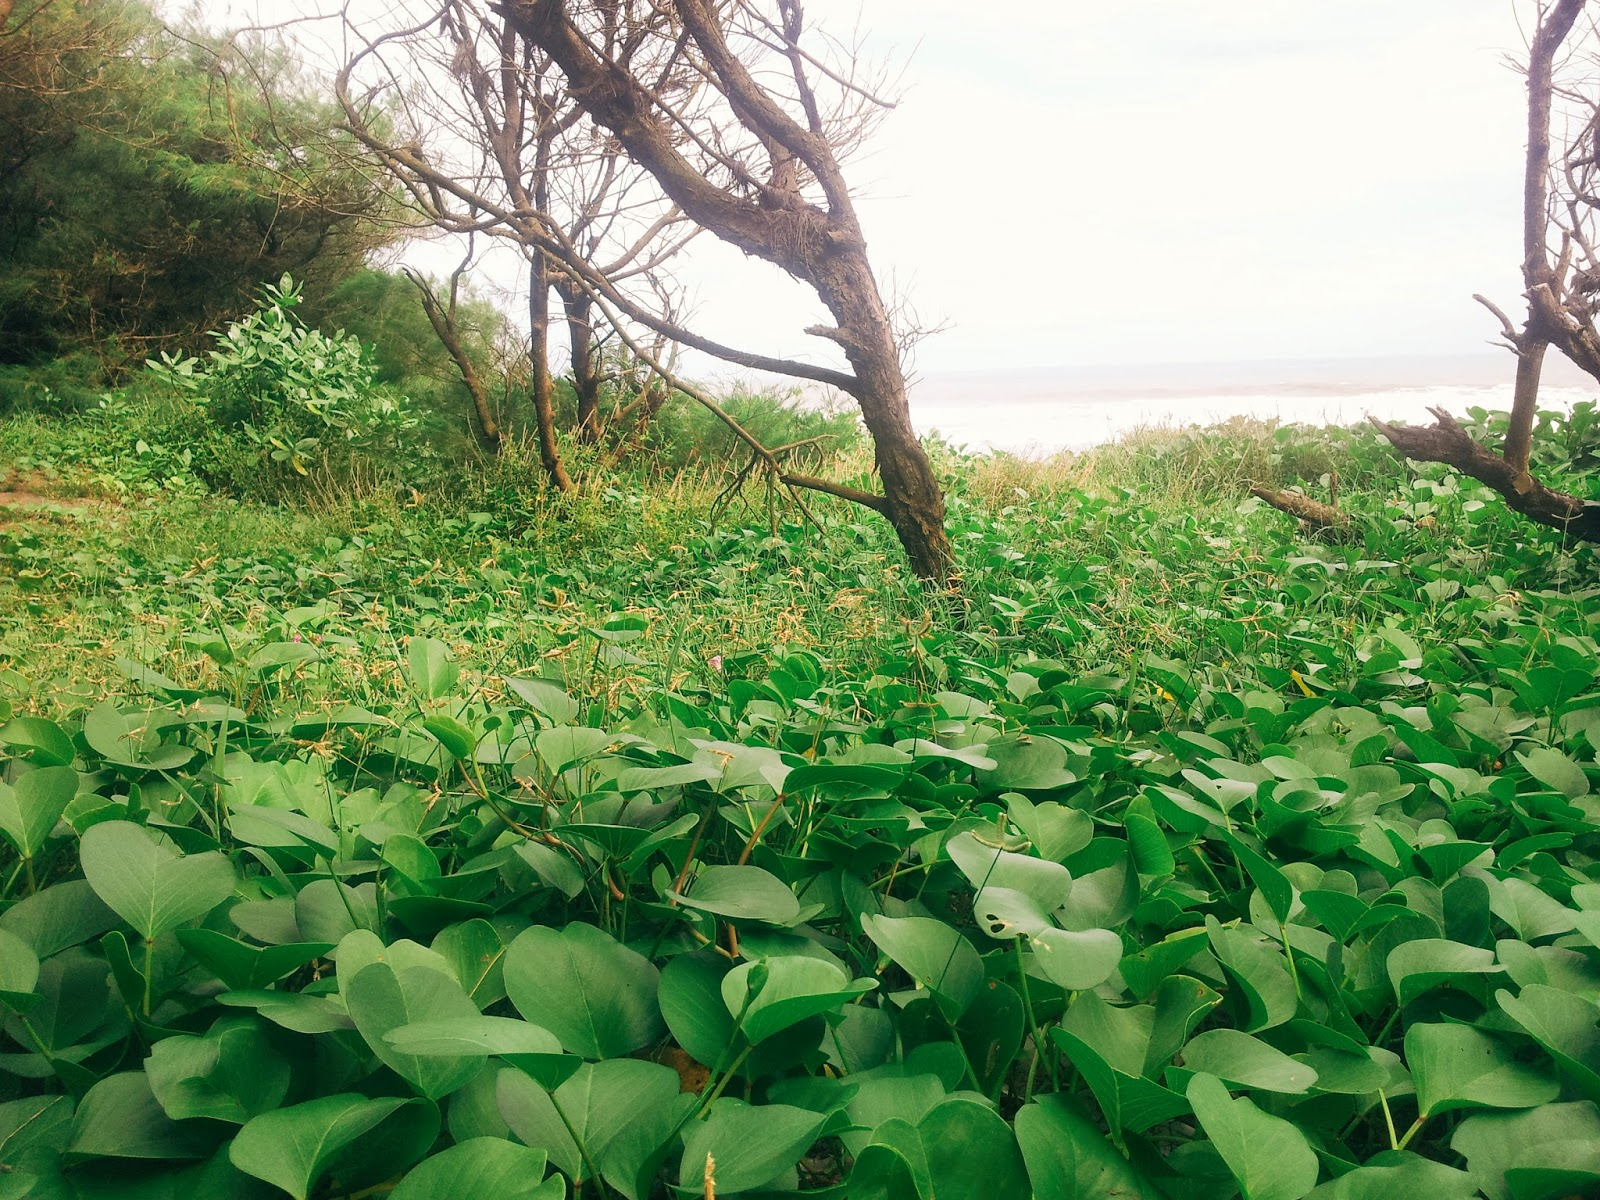 Vegetation in Goa Cemara beach in Bantul, Jogja